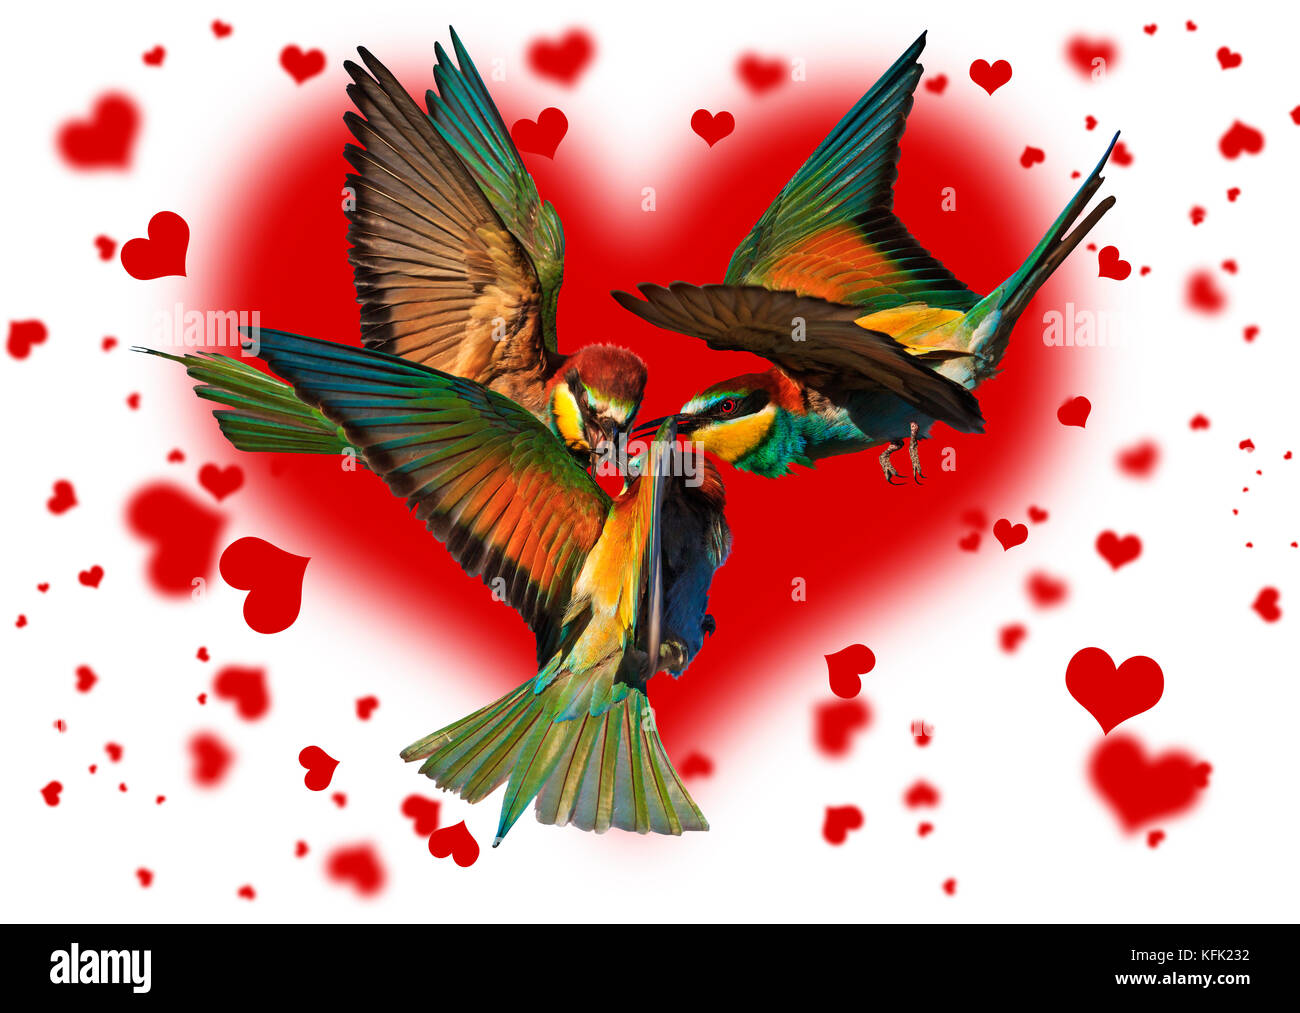 love triangle of birds fighting on the background of the hearts - Stock Image